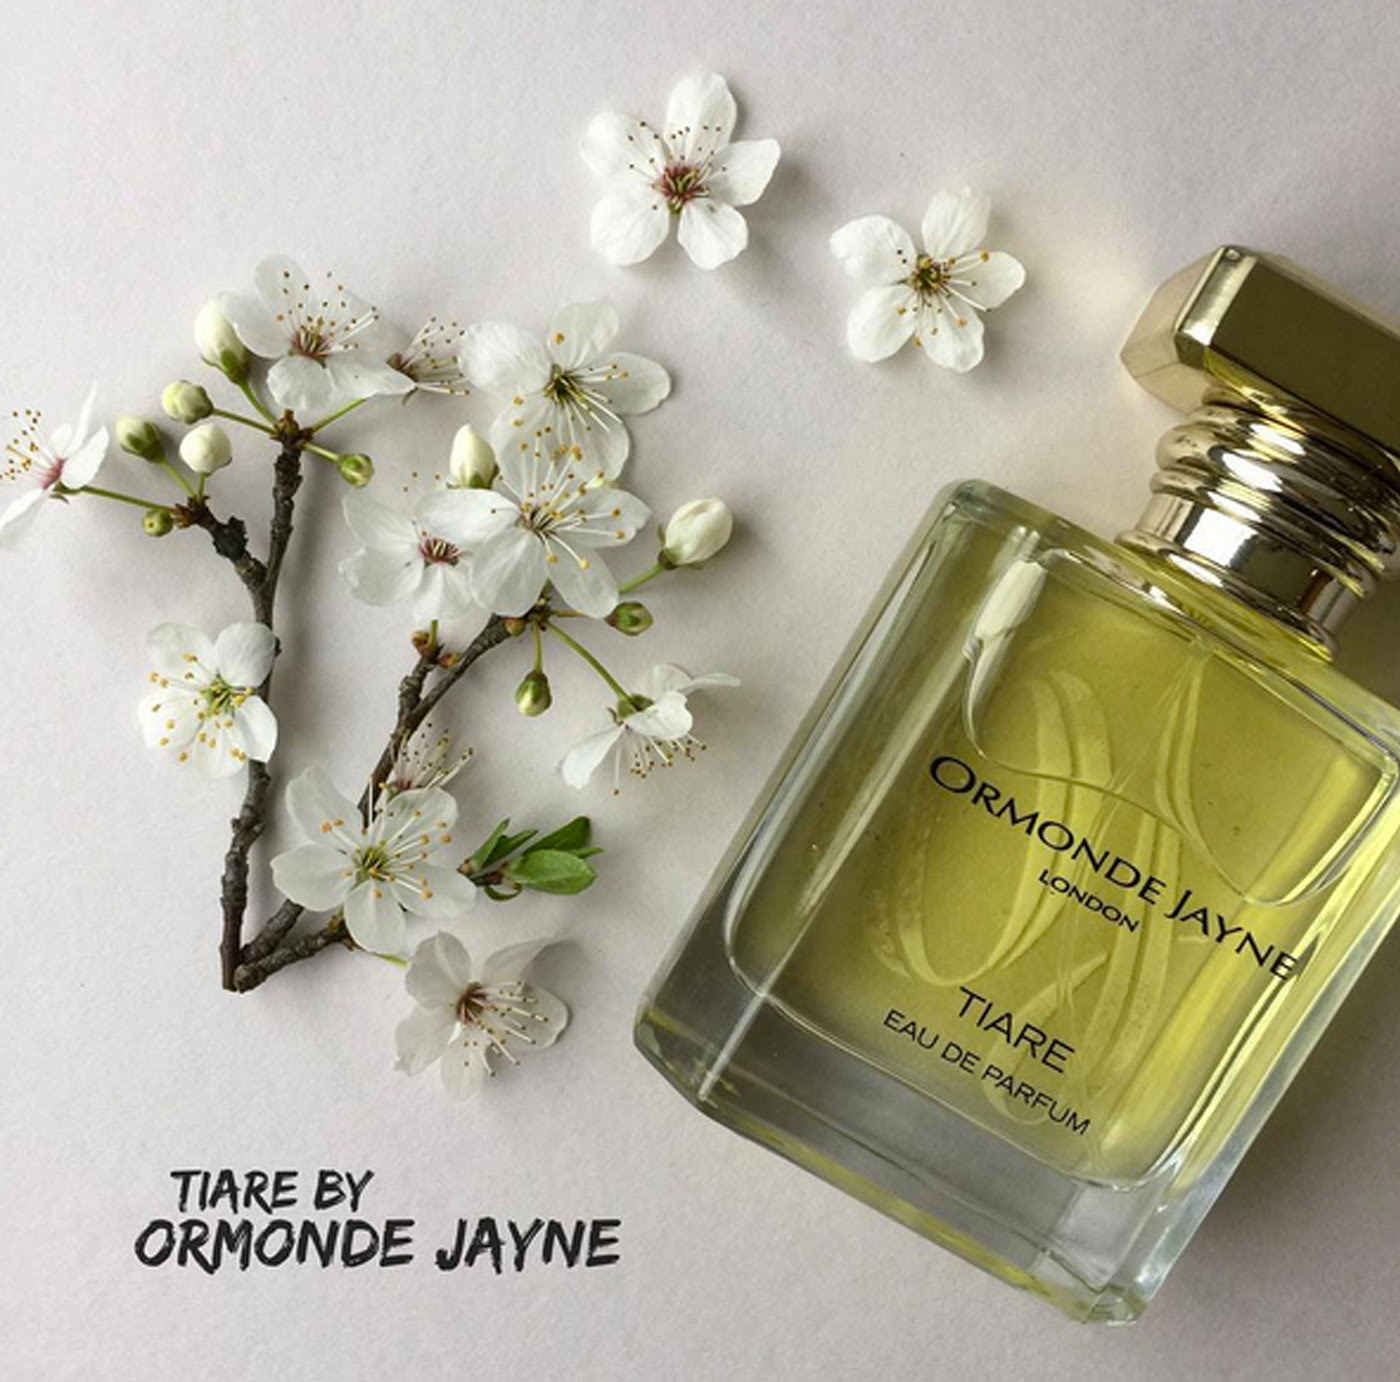 Best Fragrances For Mothers Day; We Wear Perfume We Wear Perfume